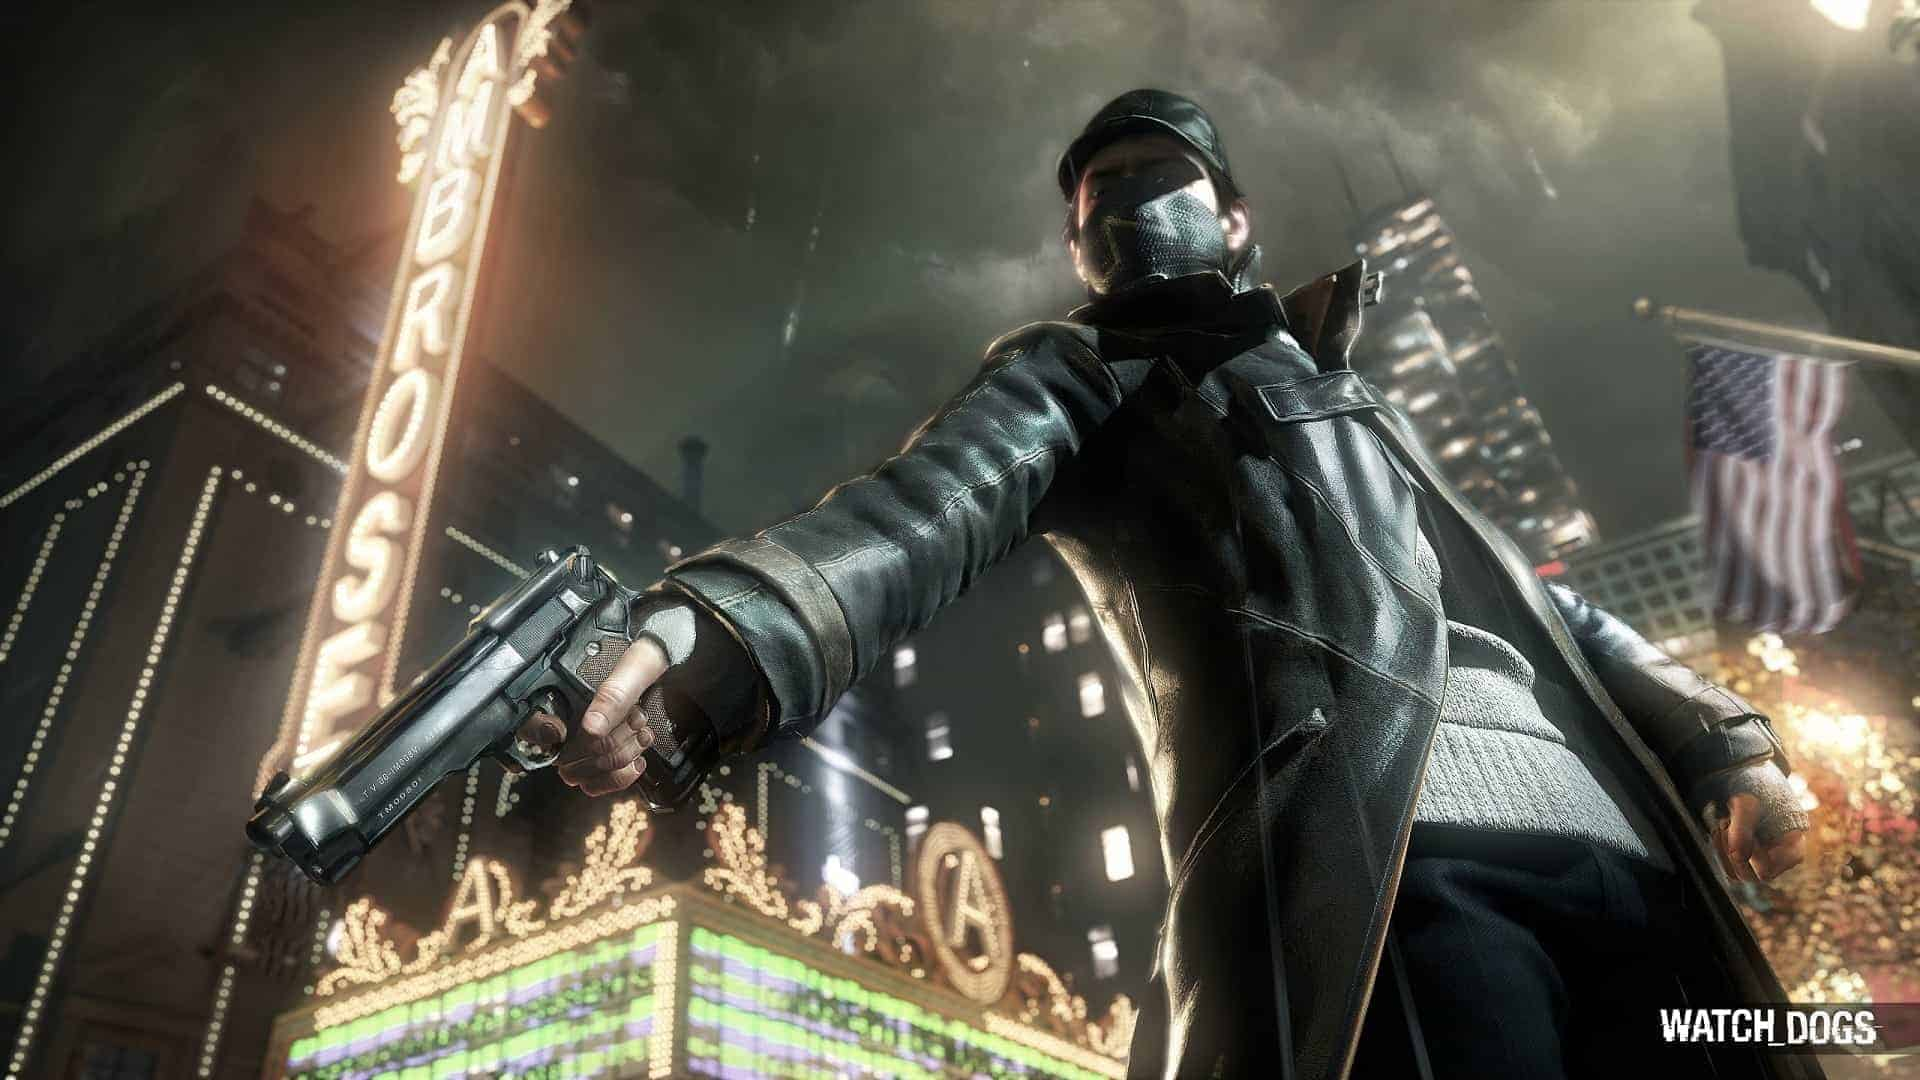 watch-dogs-662605